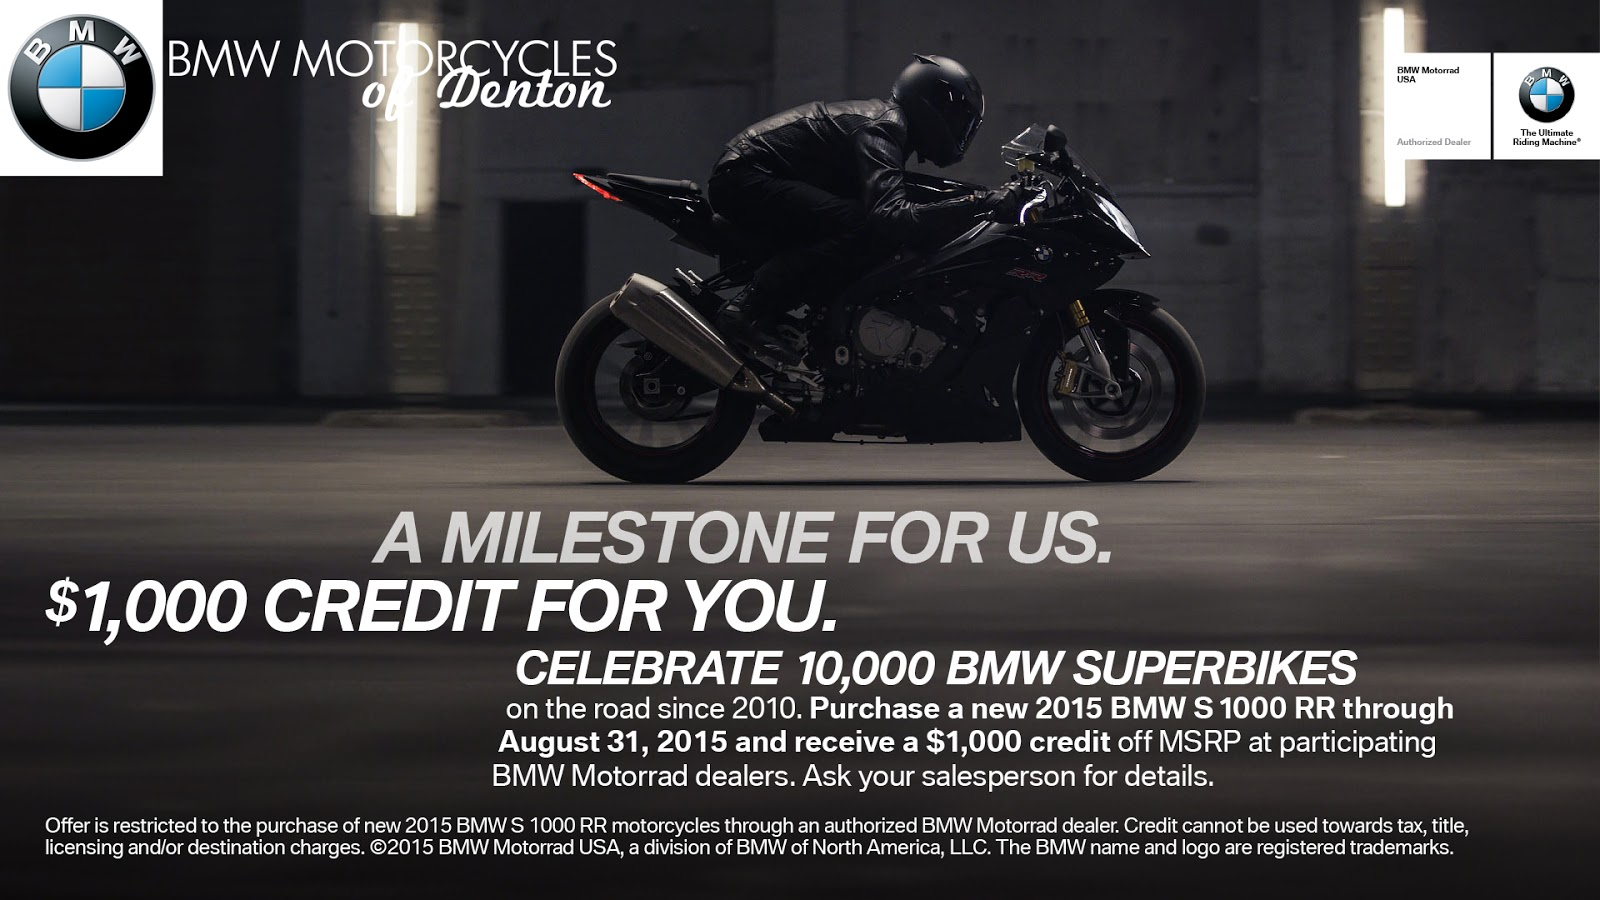 bmw motorcycles of denton: bmw motorcycle promotions going on now